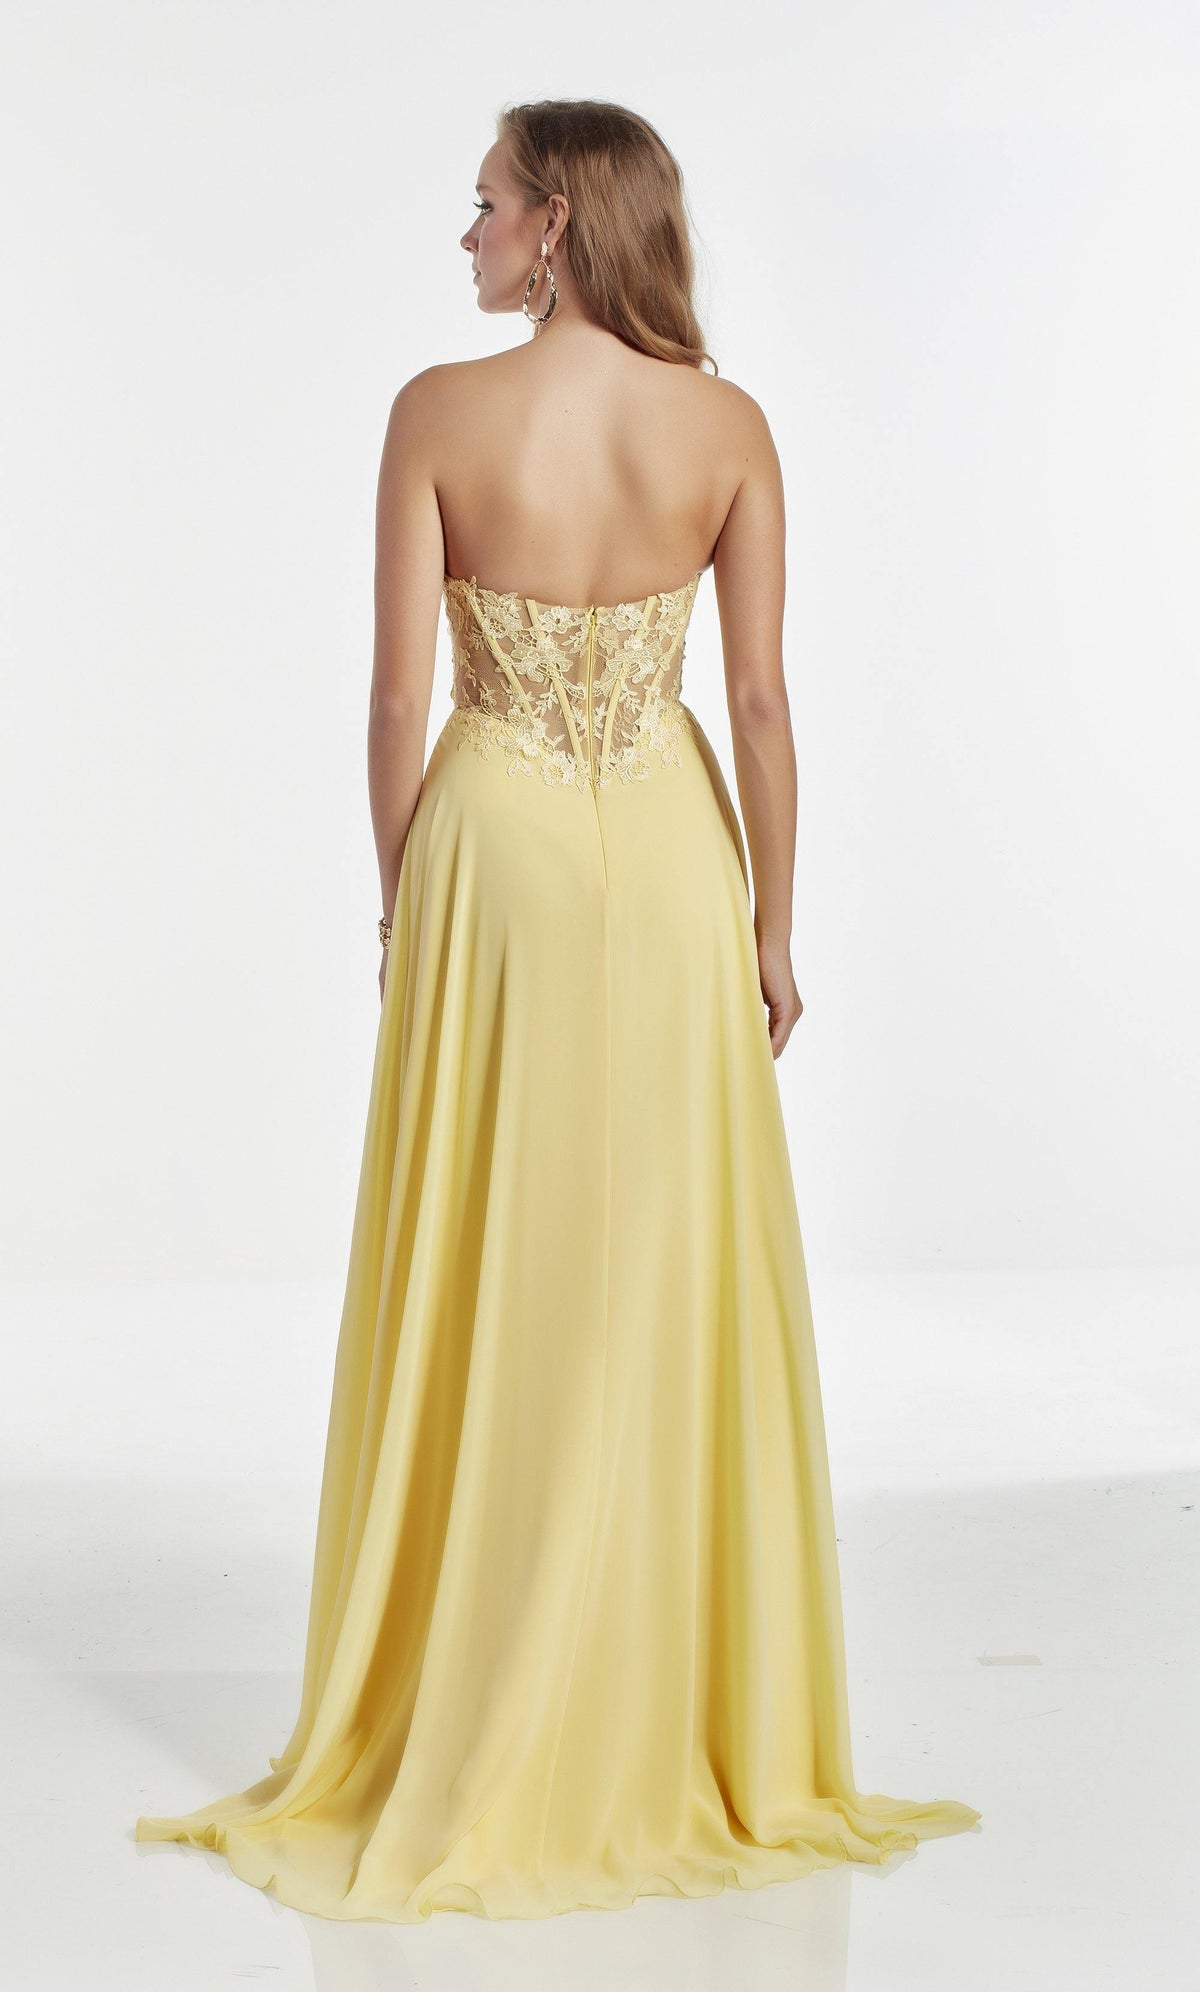 Light Yellow strapless bridesmaid dress with a lace corset bodice with an enclosed back and train